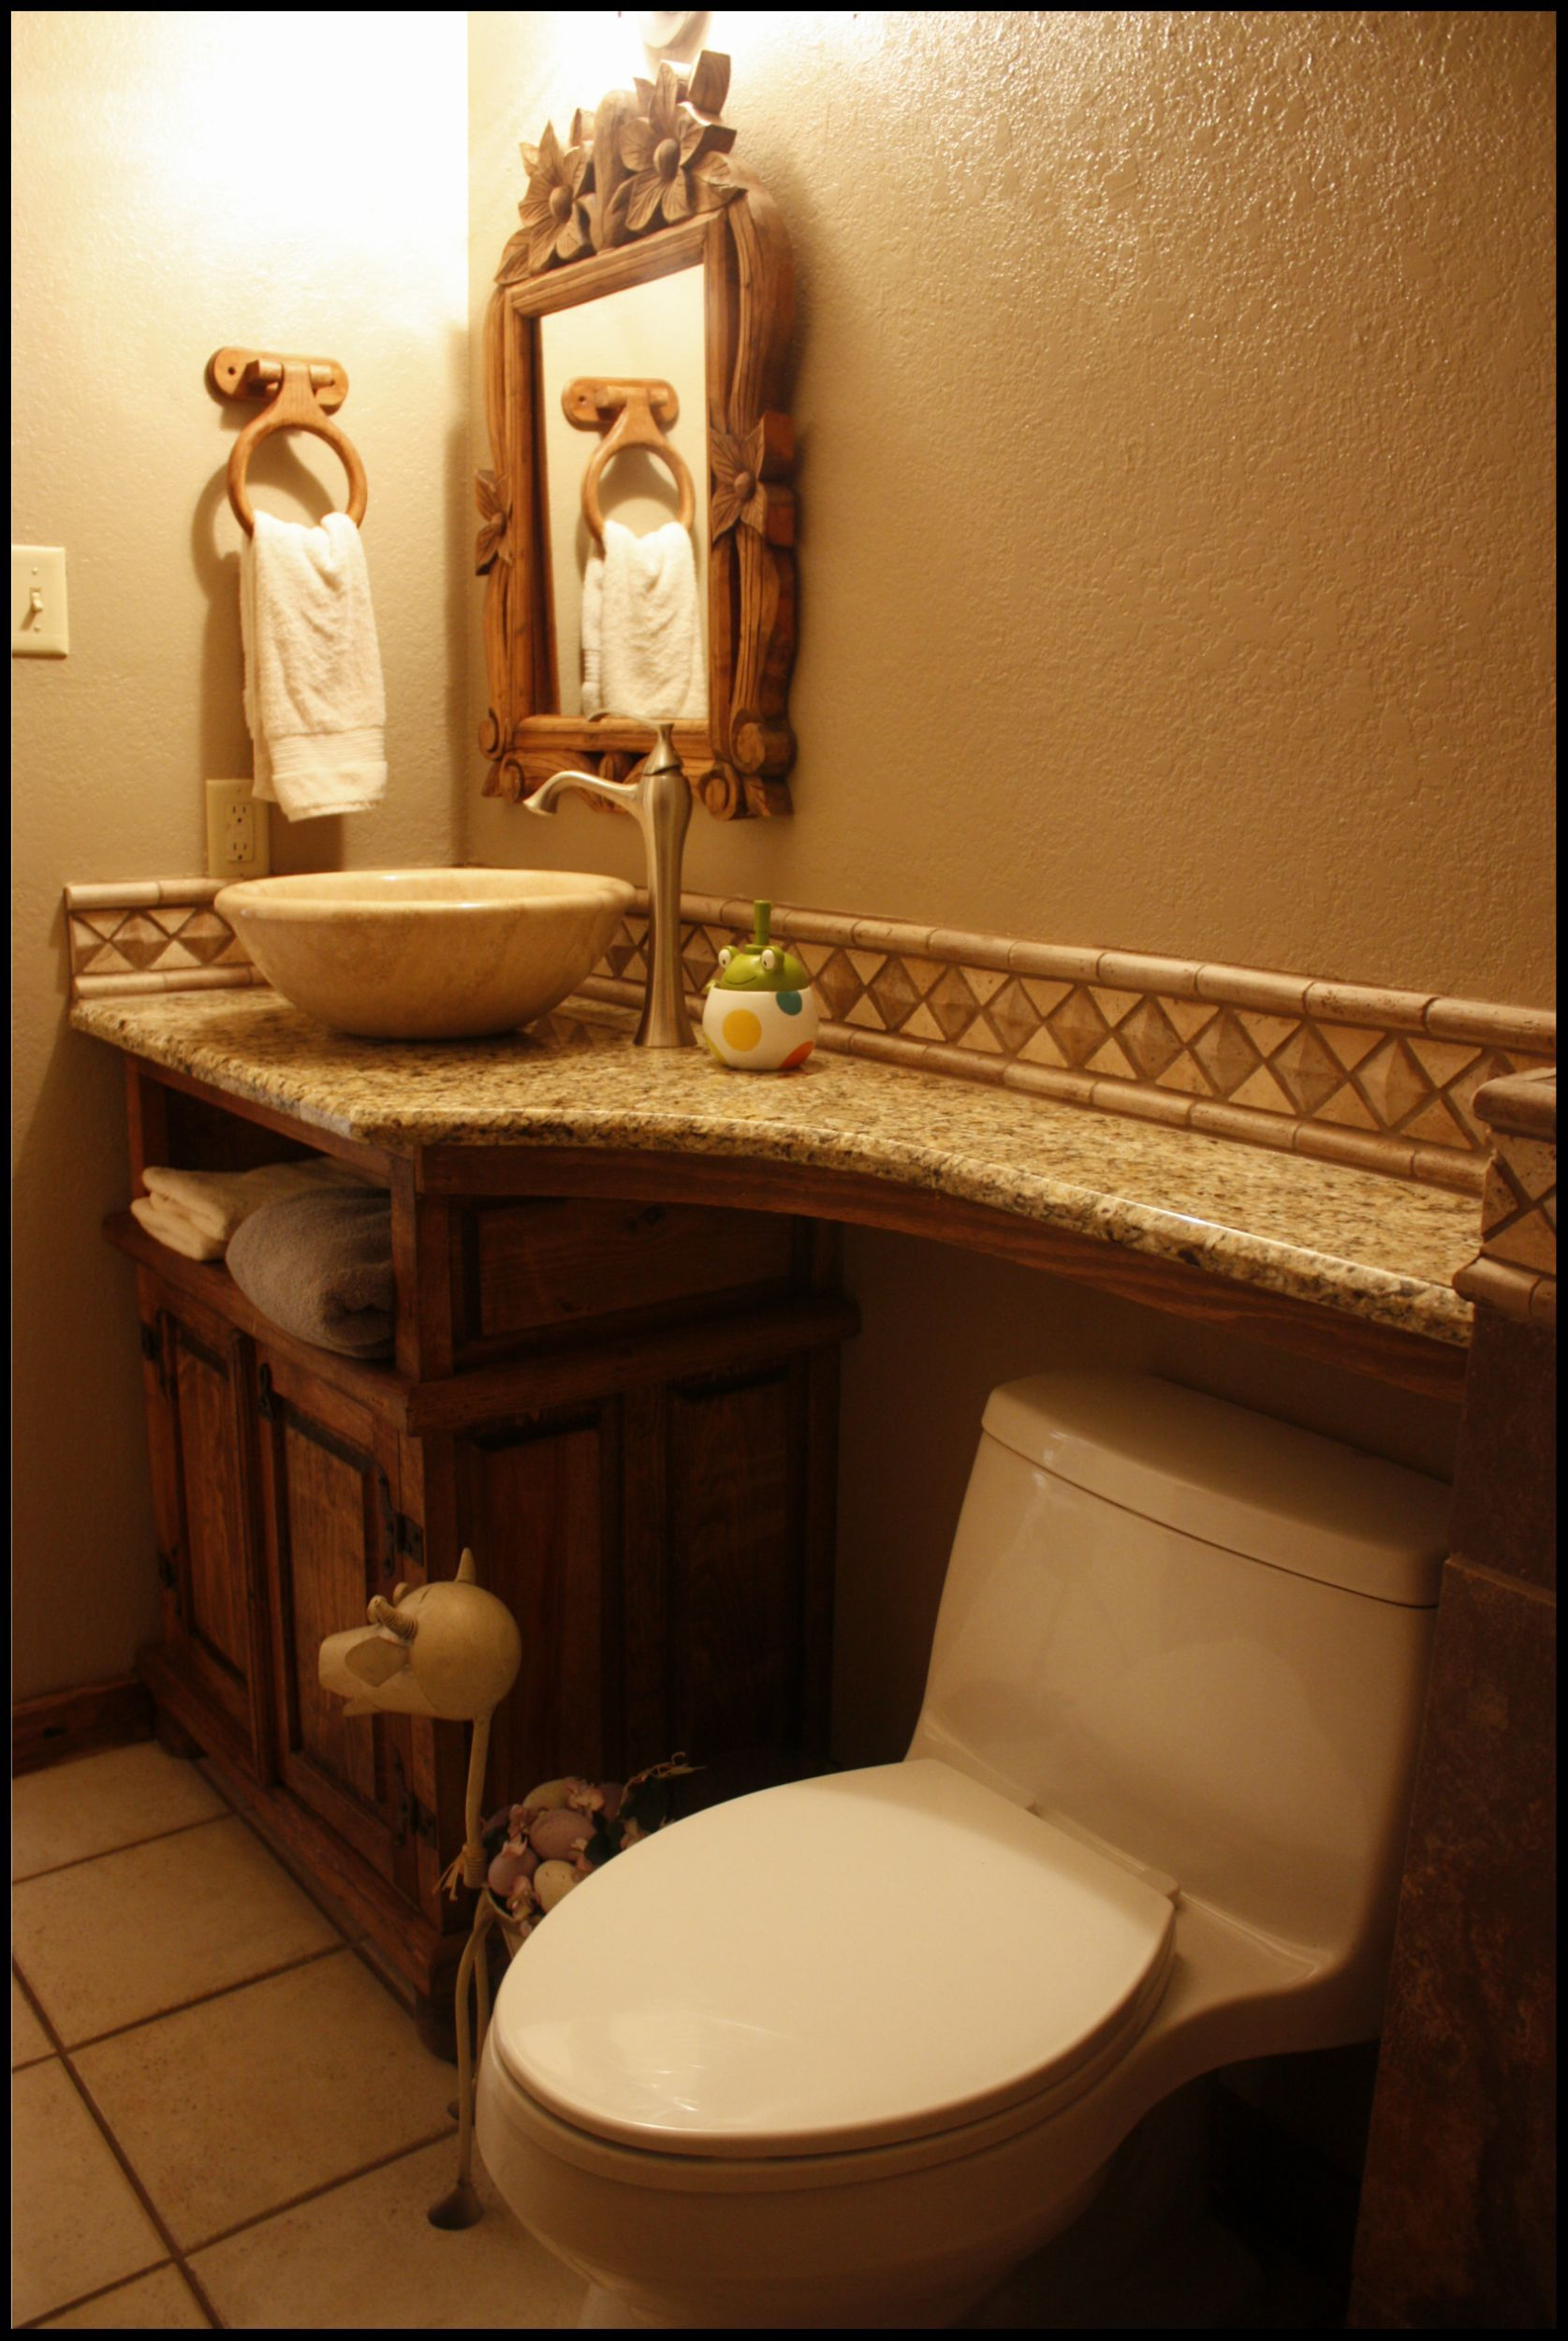 Small Bathroom With Granite On Top Of Toilet For Extra Counter Space Nice Change Small Rustic Bathrooms Rustic Bathrooms Small Bathroom Vanities